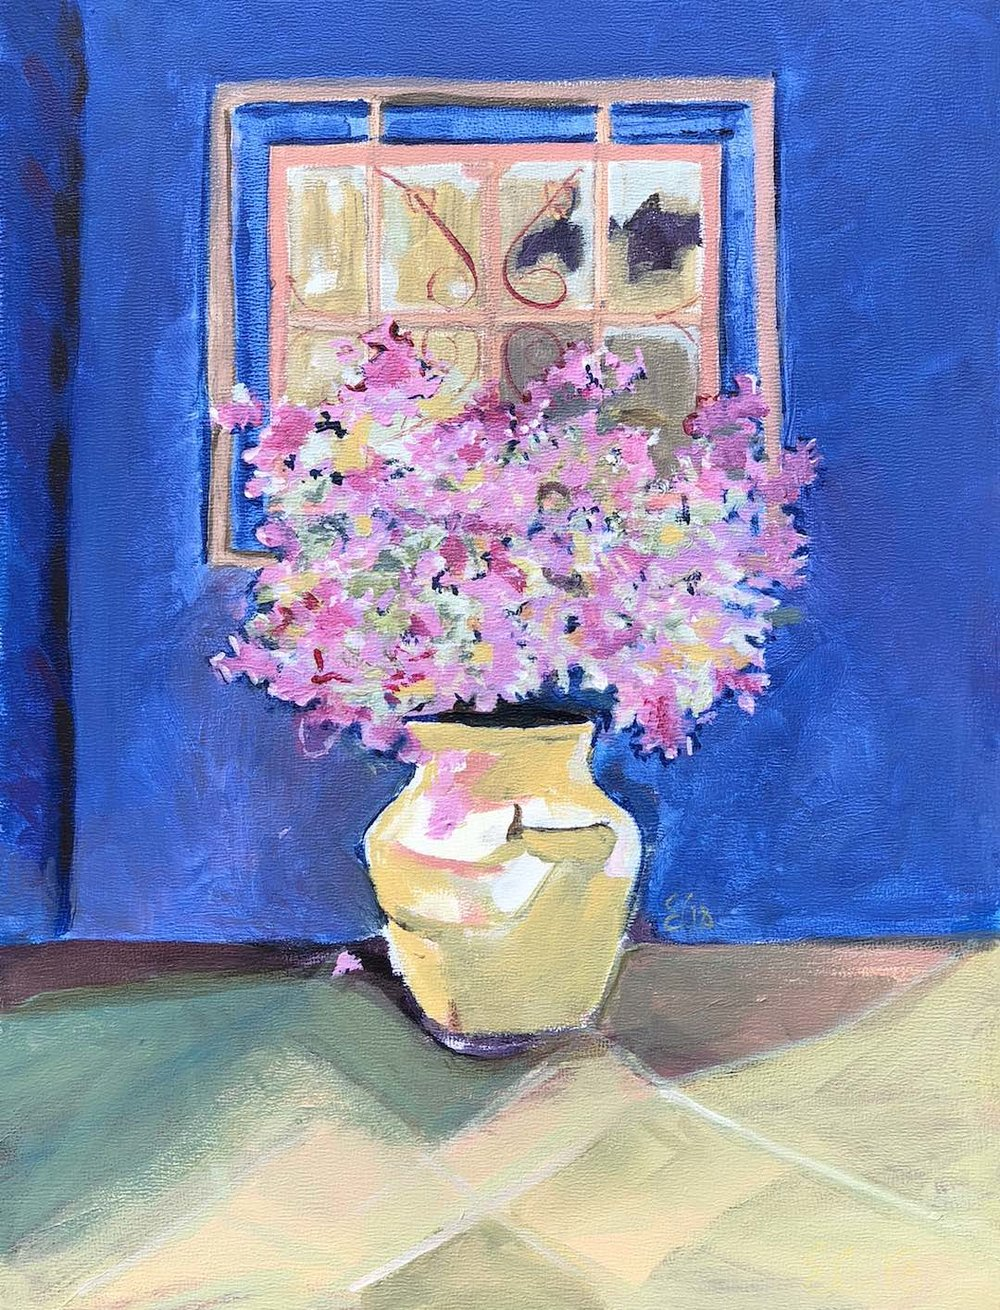 Pink bougainvillea and blue wall